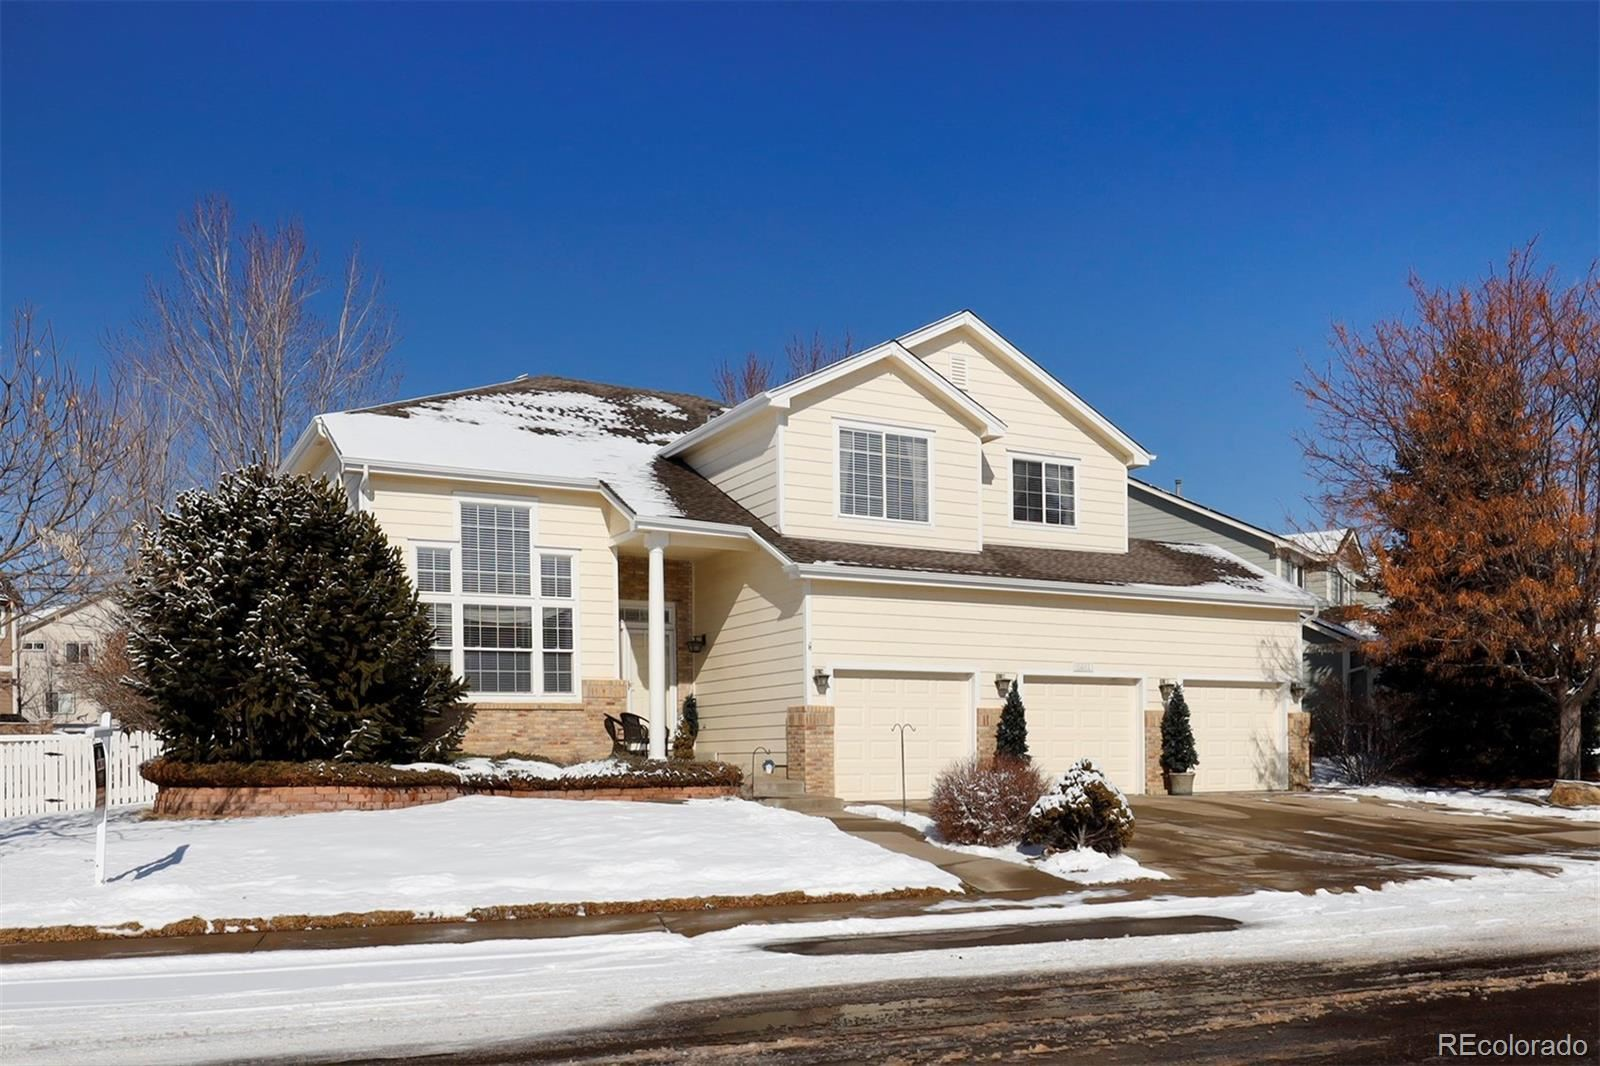 6481 S Jericho Circle, Centennial, CO 80016 - #: 4710502